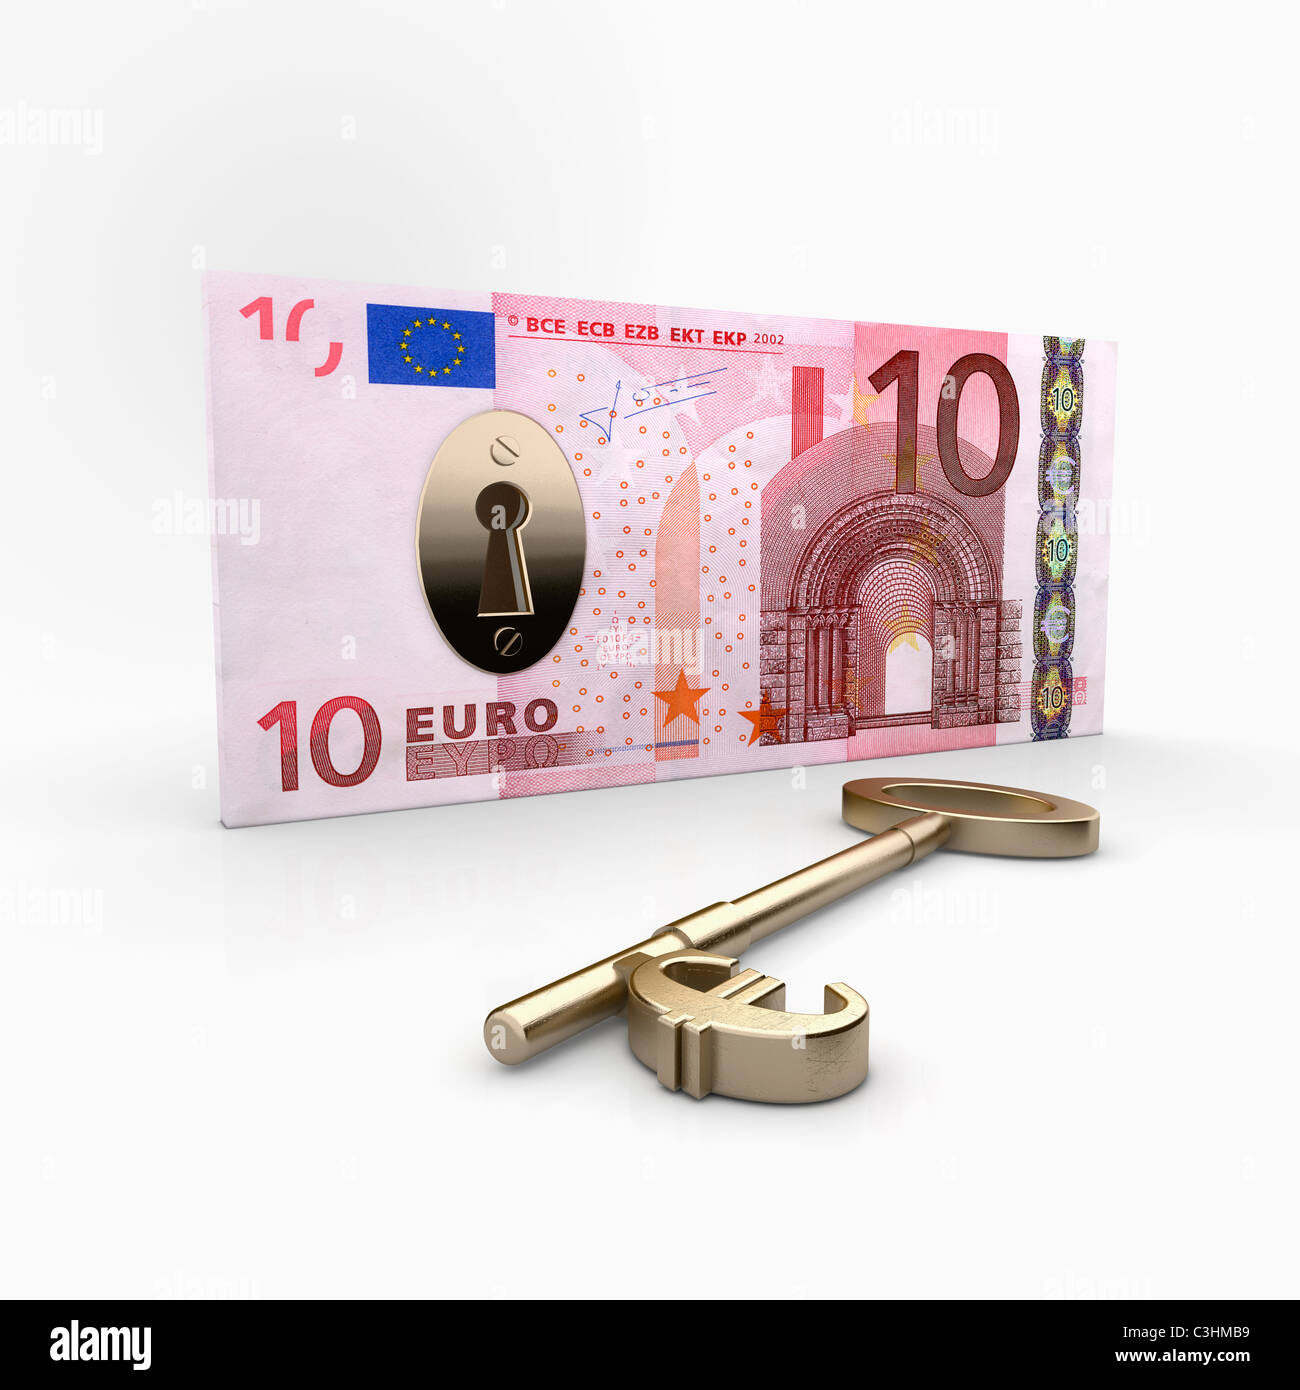 Ten Euro banknote with lock inside, key with Euro symbol laying beside - Stock Image